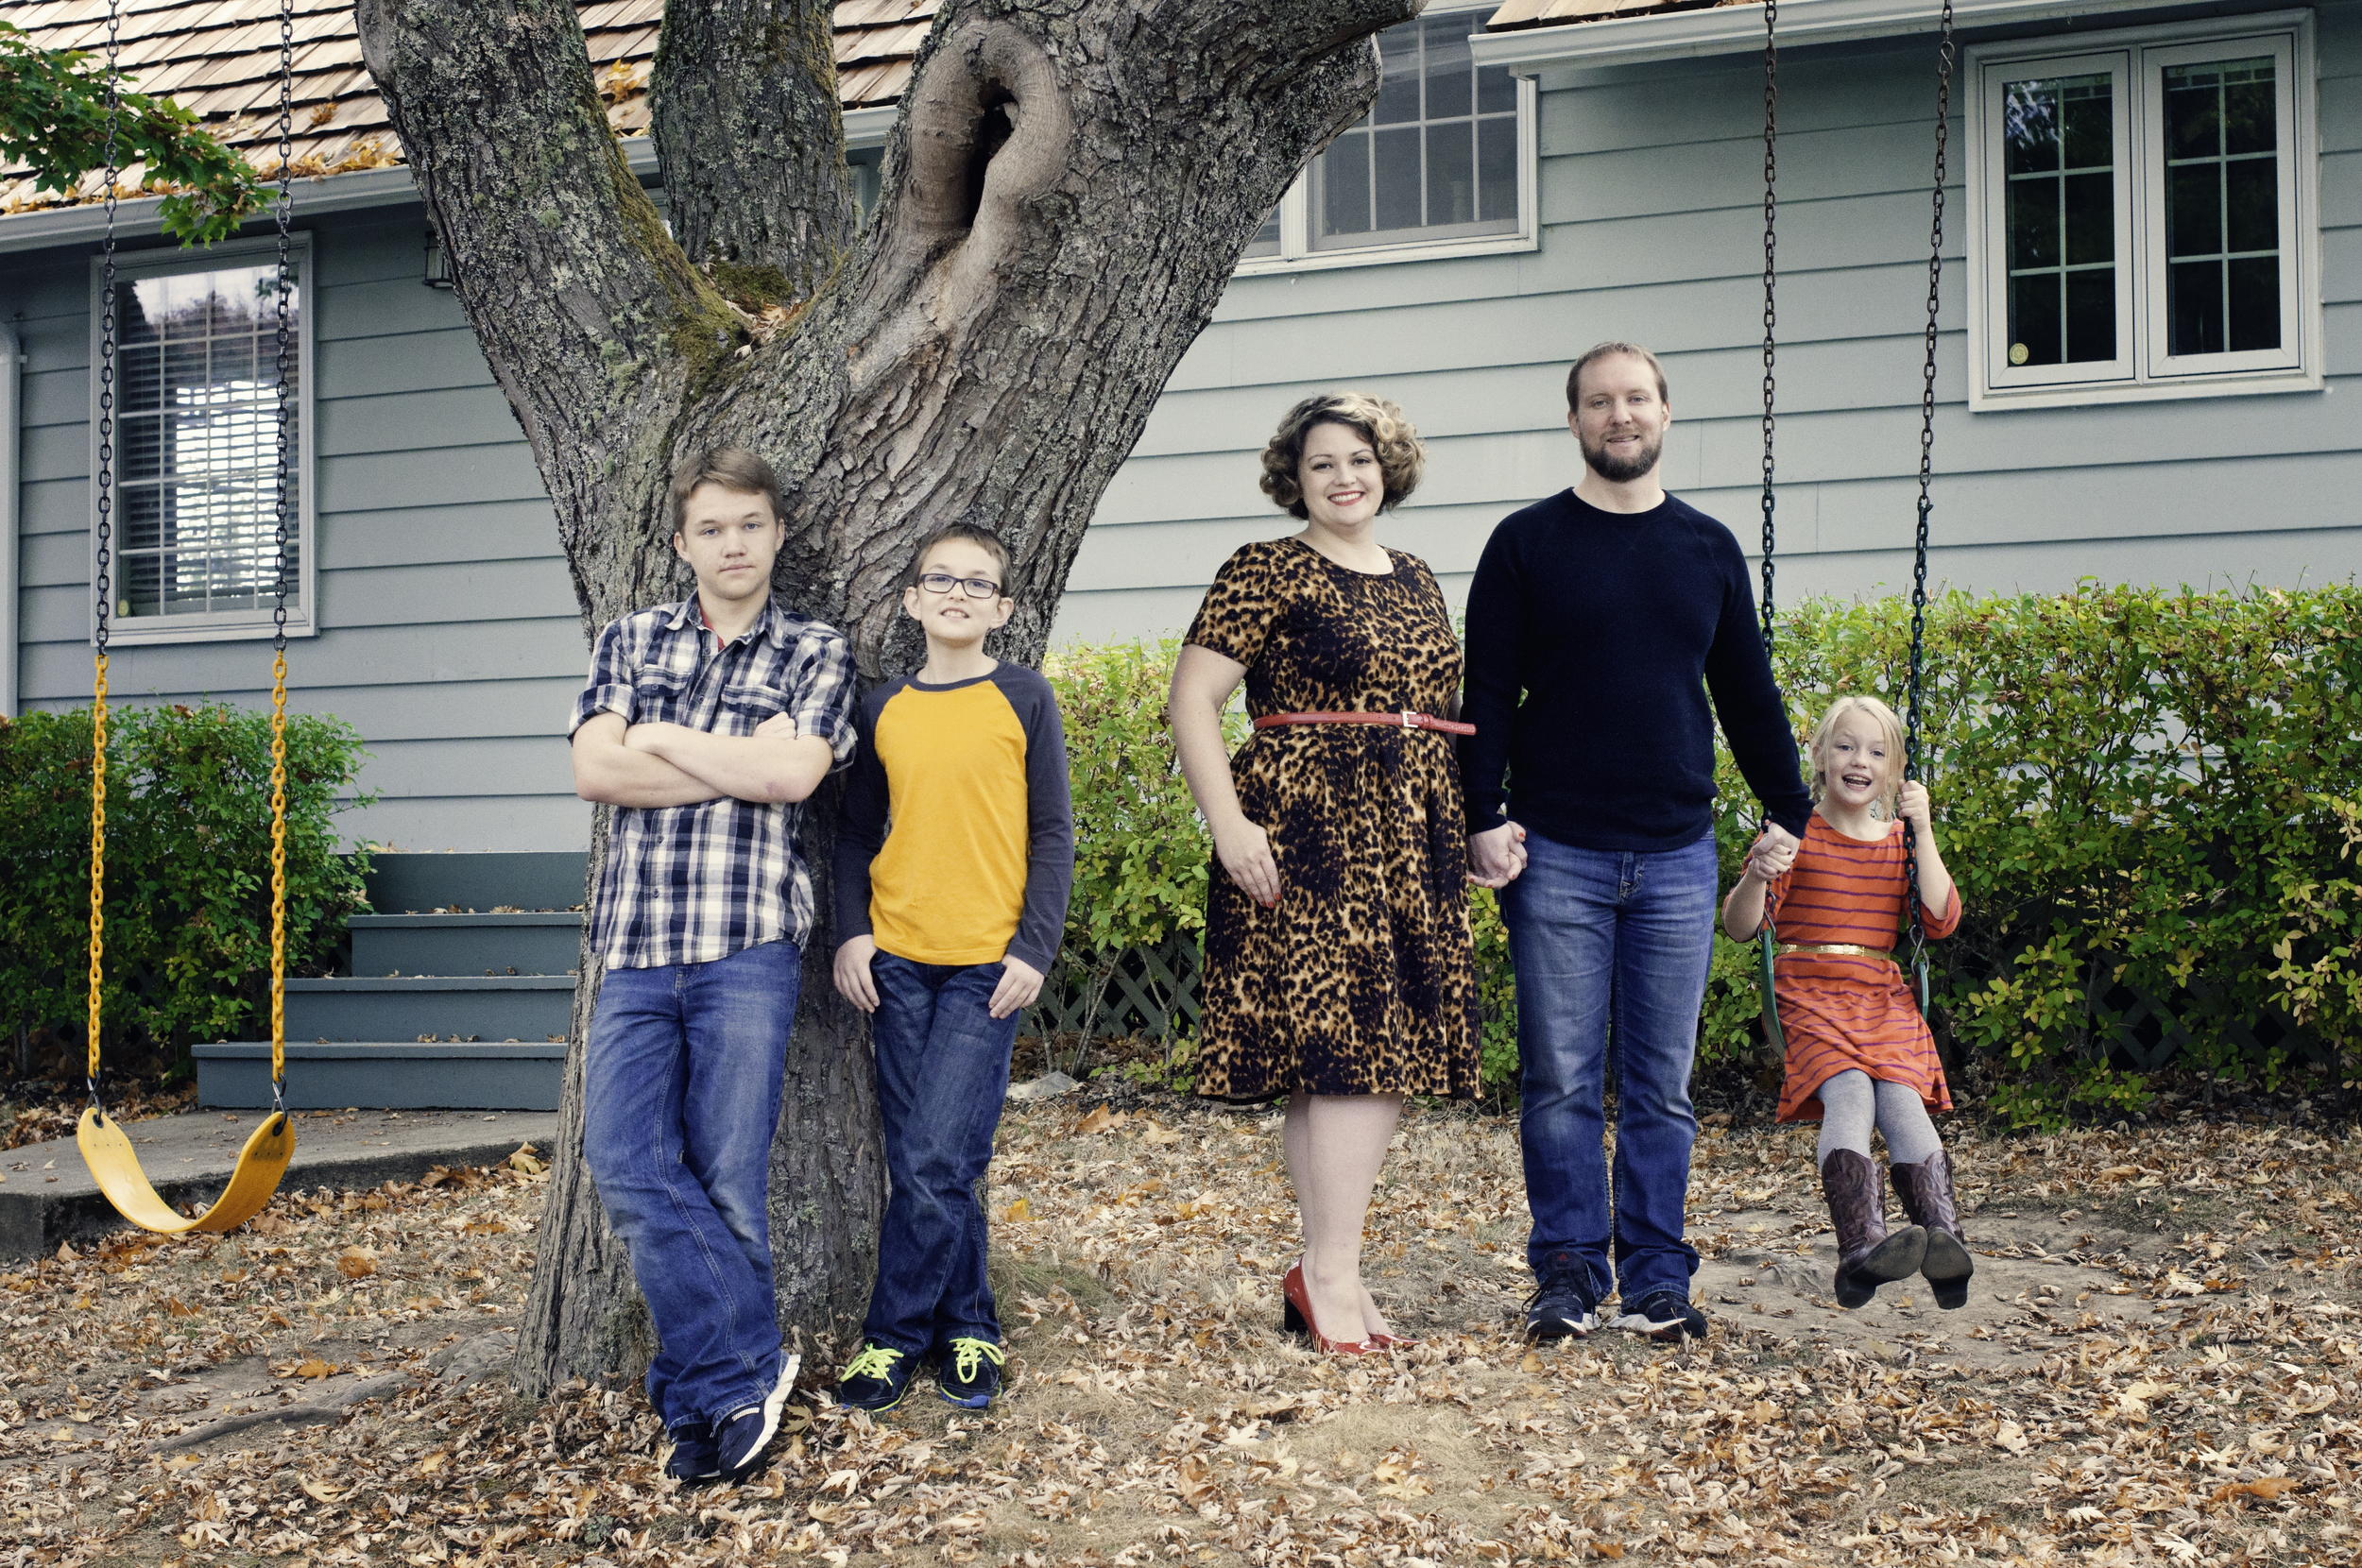 Grell family photos-Family candid-ish by tree and swing.jpg